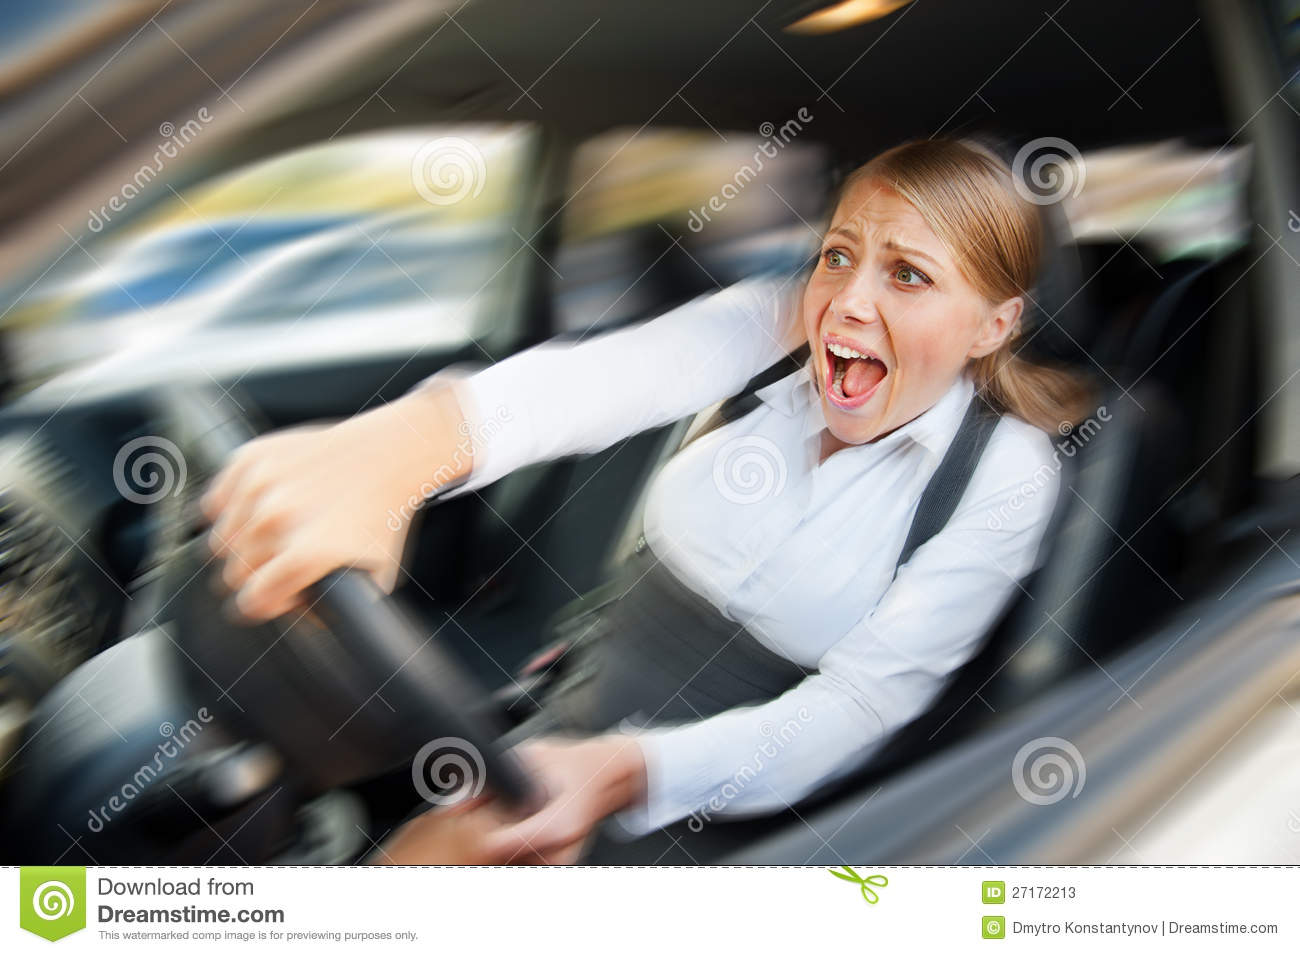 Female Driving The Car And Screaming Stock Photos - Image: 27172213